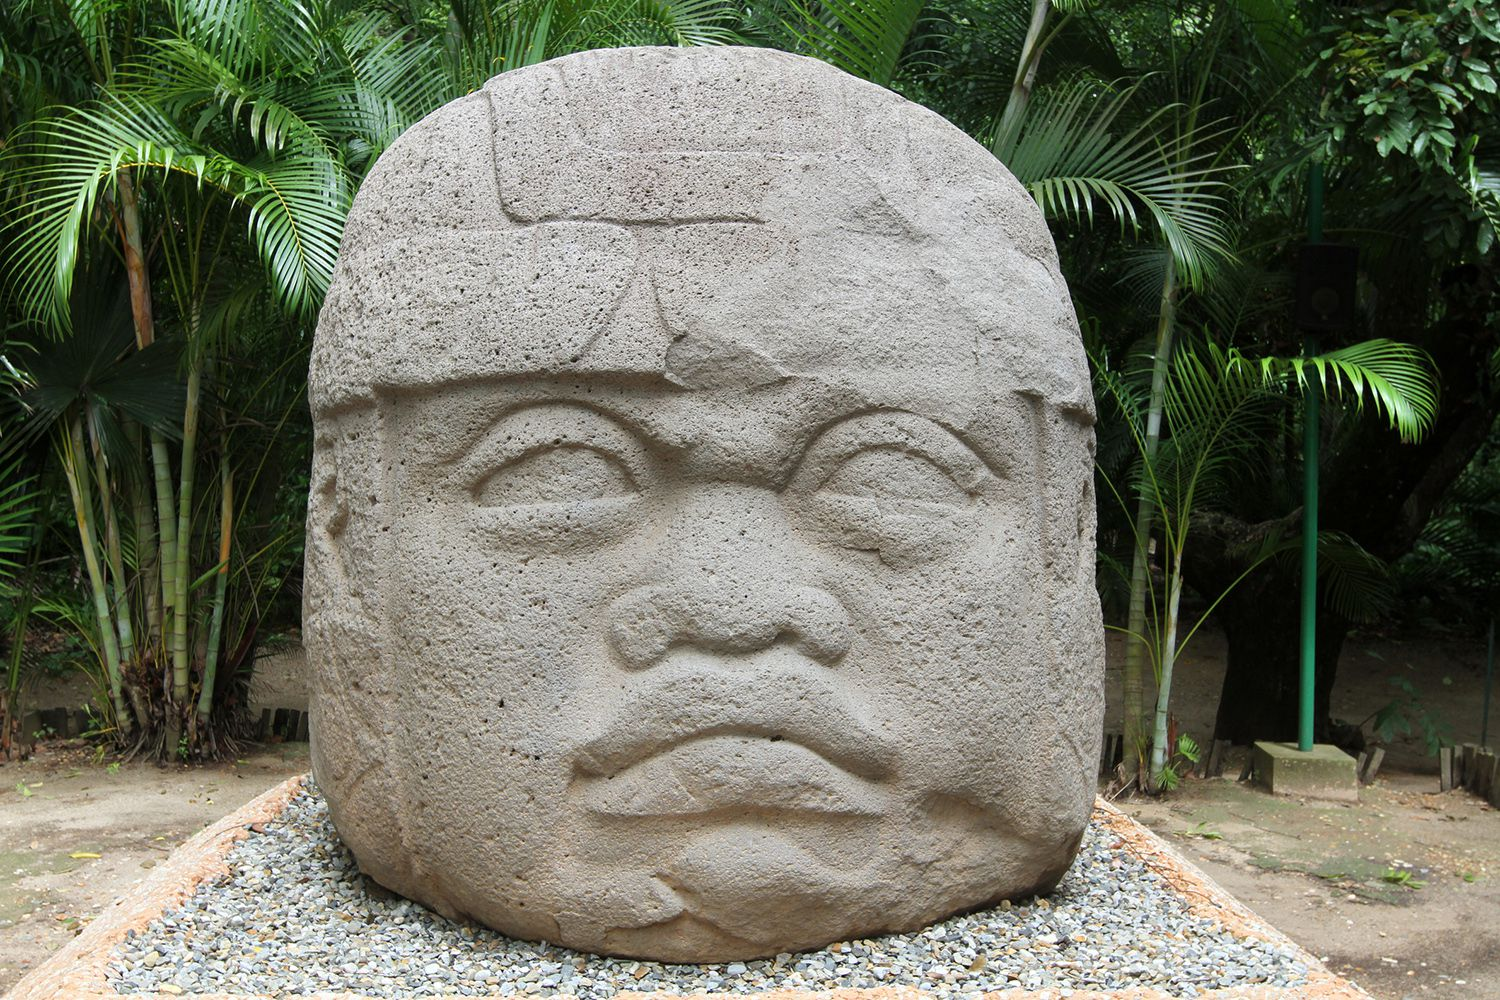 The Colossal Heads Of The Olmec